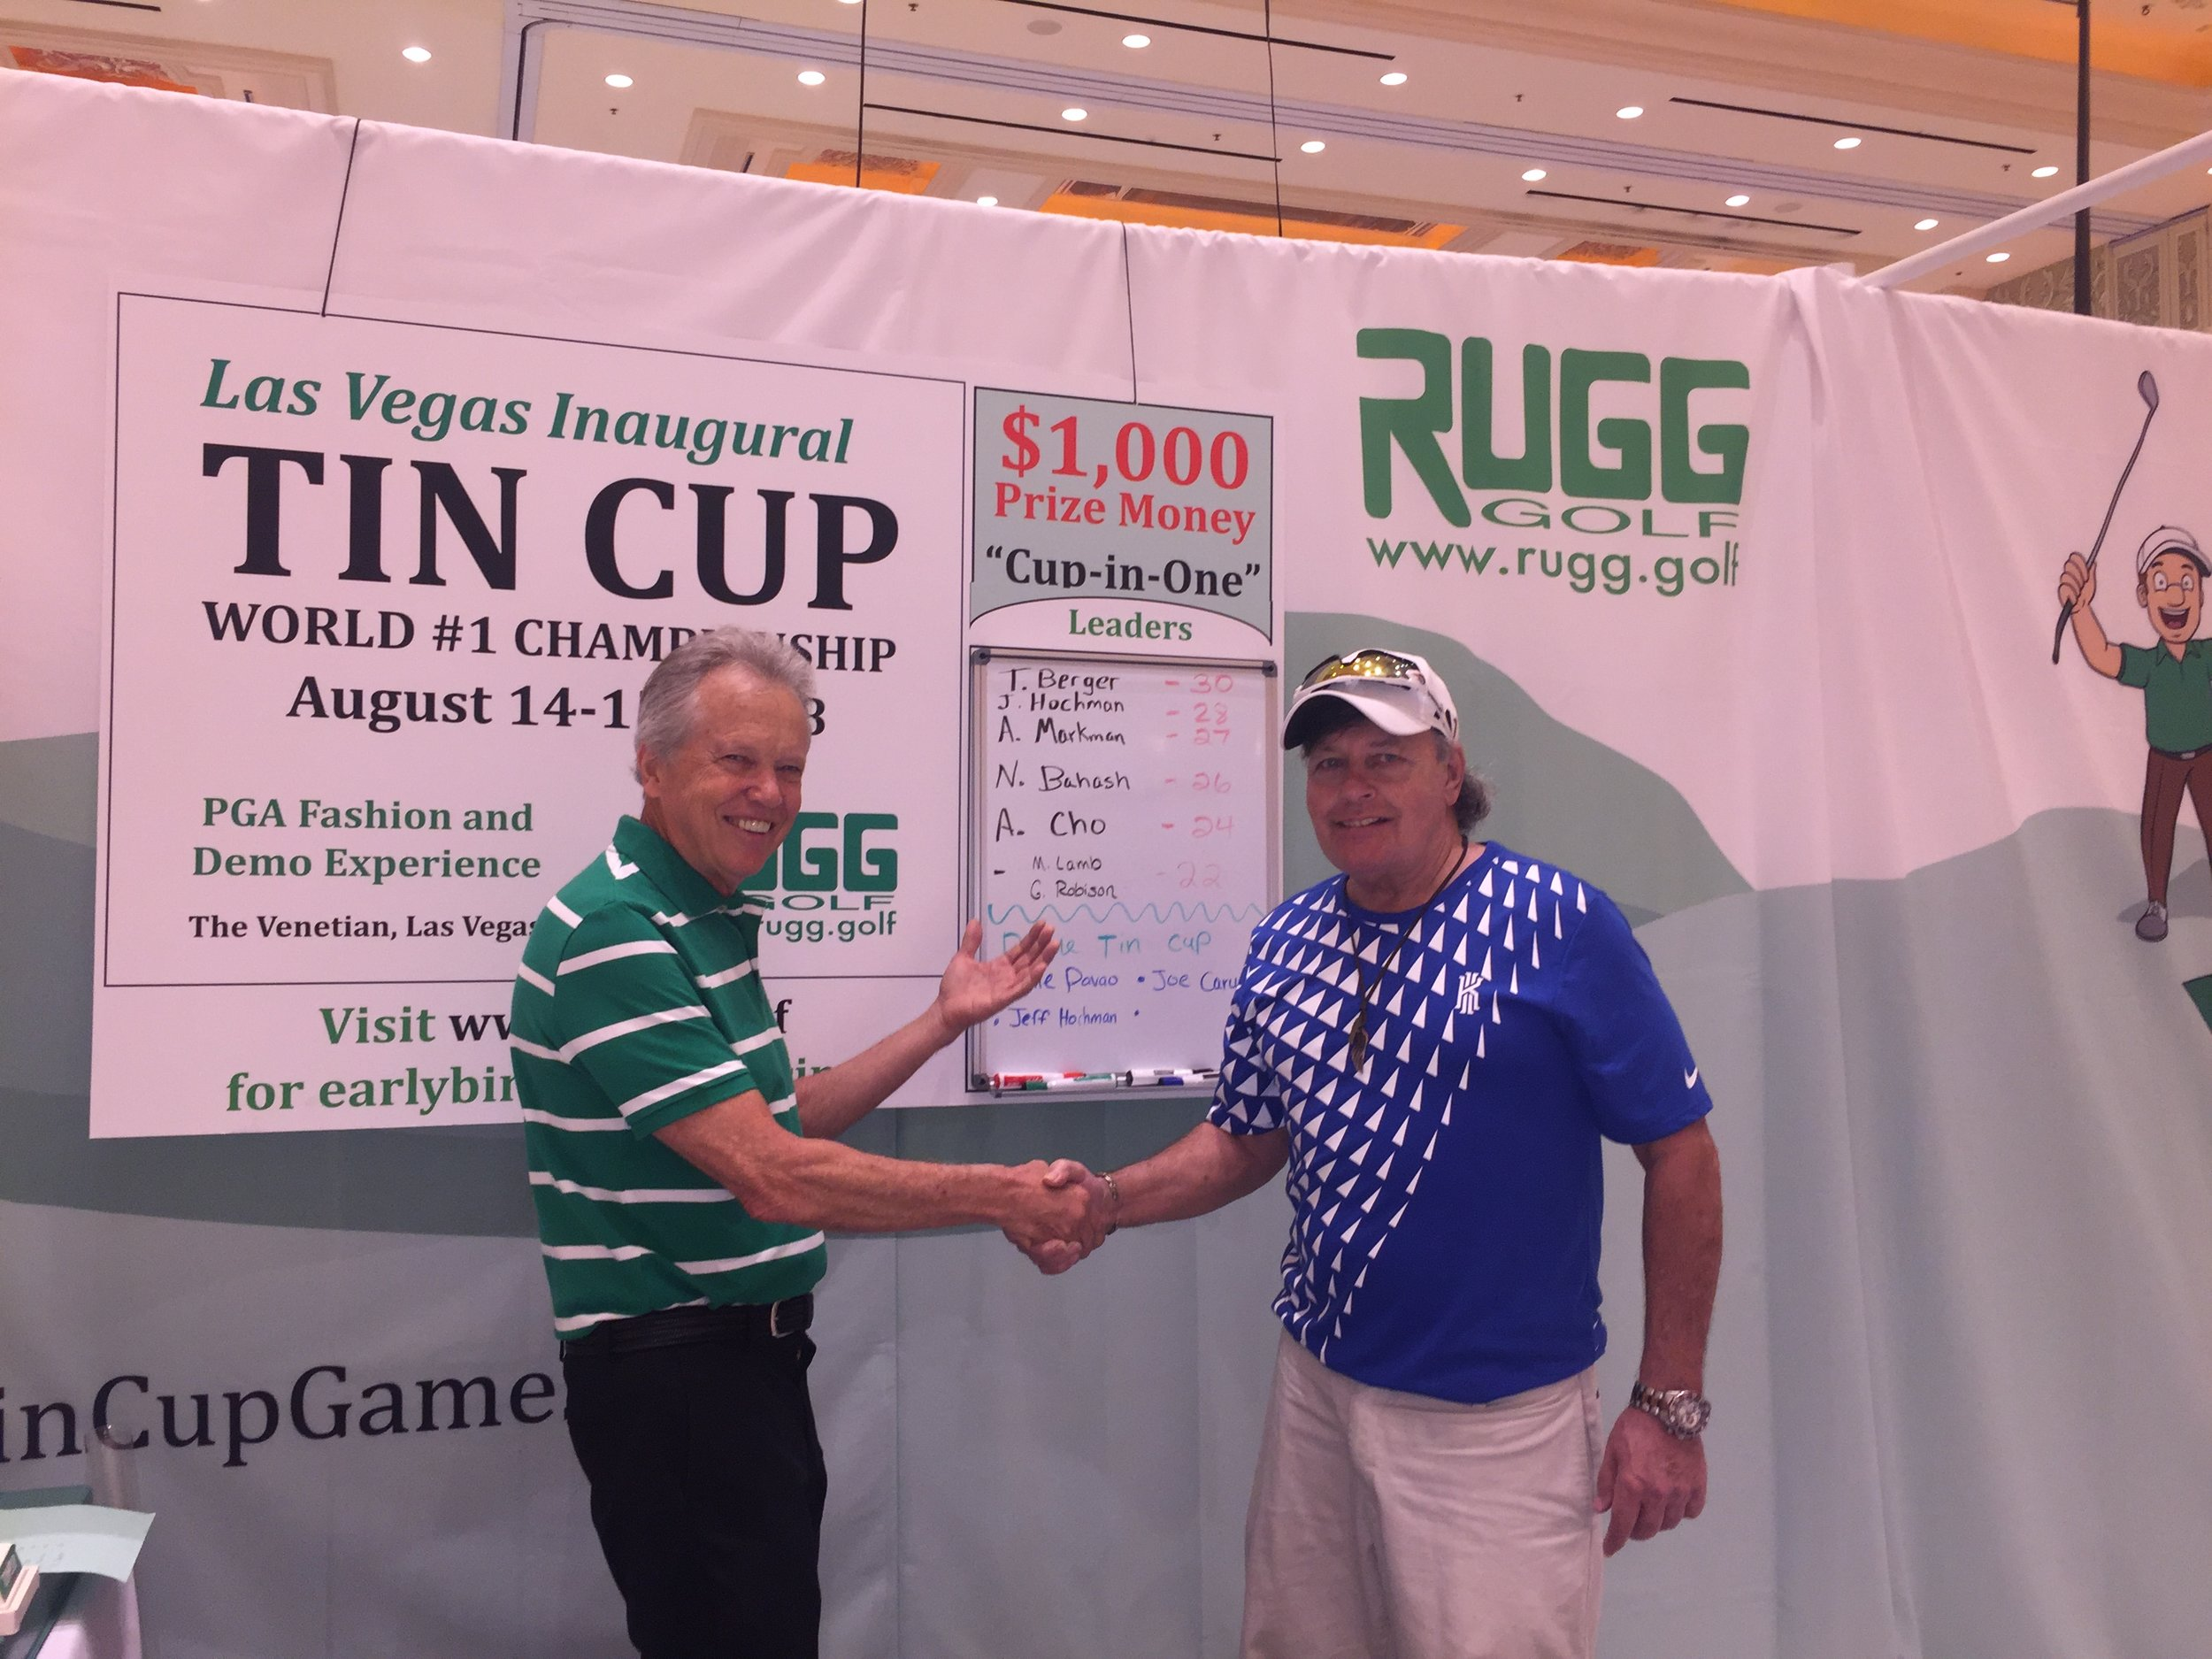 The Champion: Tin Cup World #1 Tommy Berger.